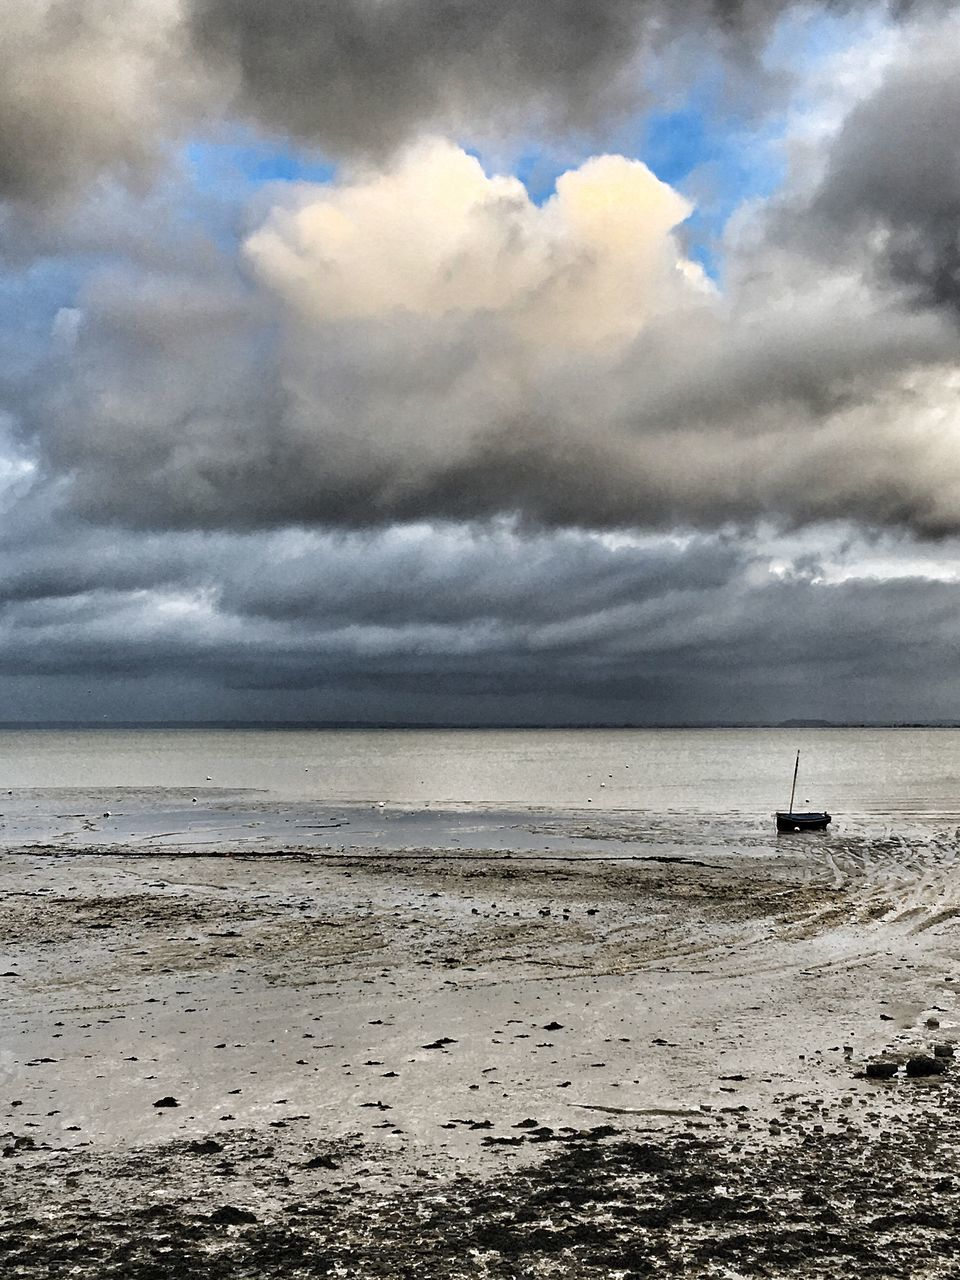 sea, cloud - sky, sky, water, nature, tranquility, beach, horizon over water, beauty in nature, scenics, nautical vessel, tranquil scene, no people, outdoors, sand, day, storm cloud